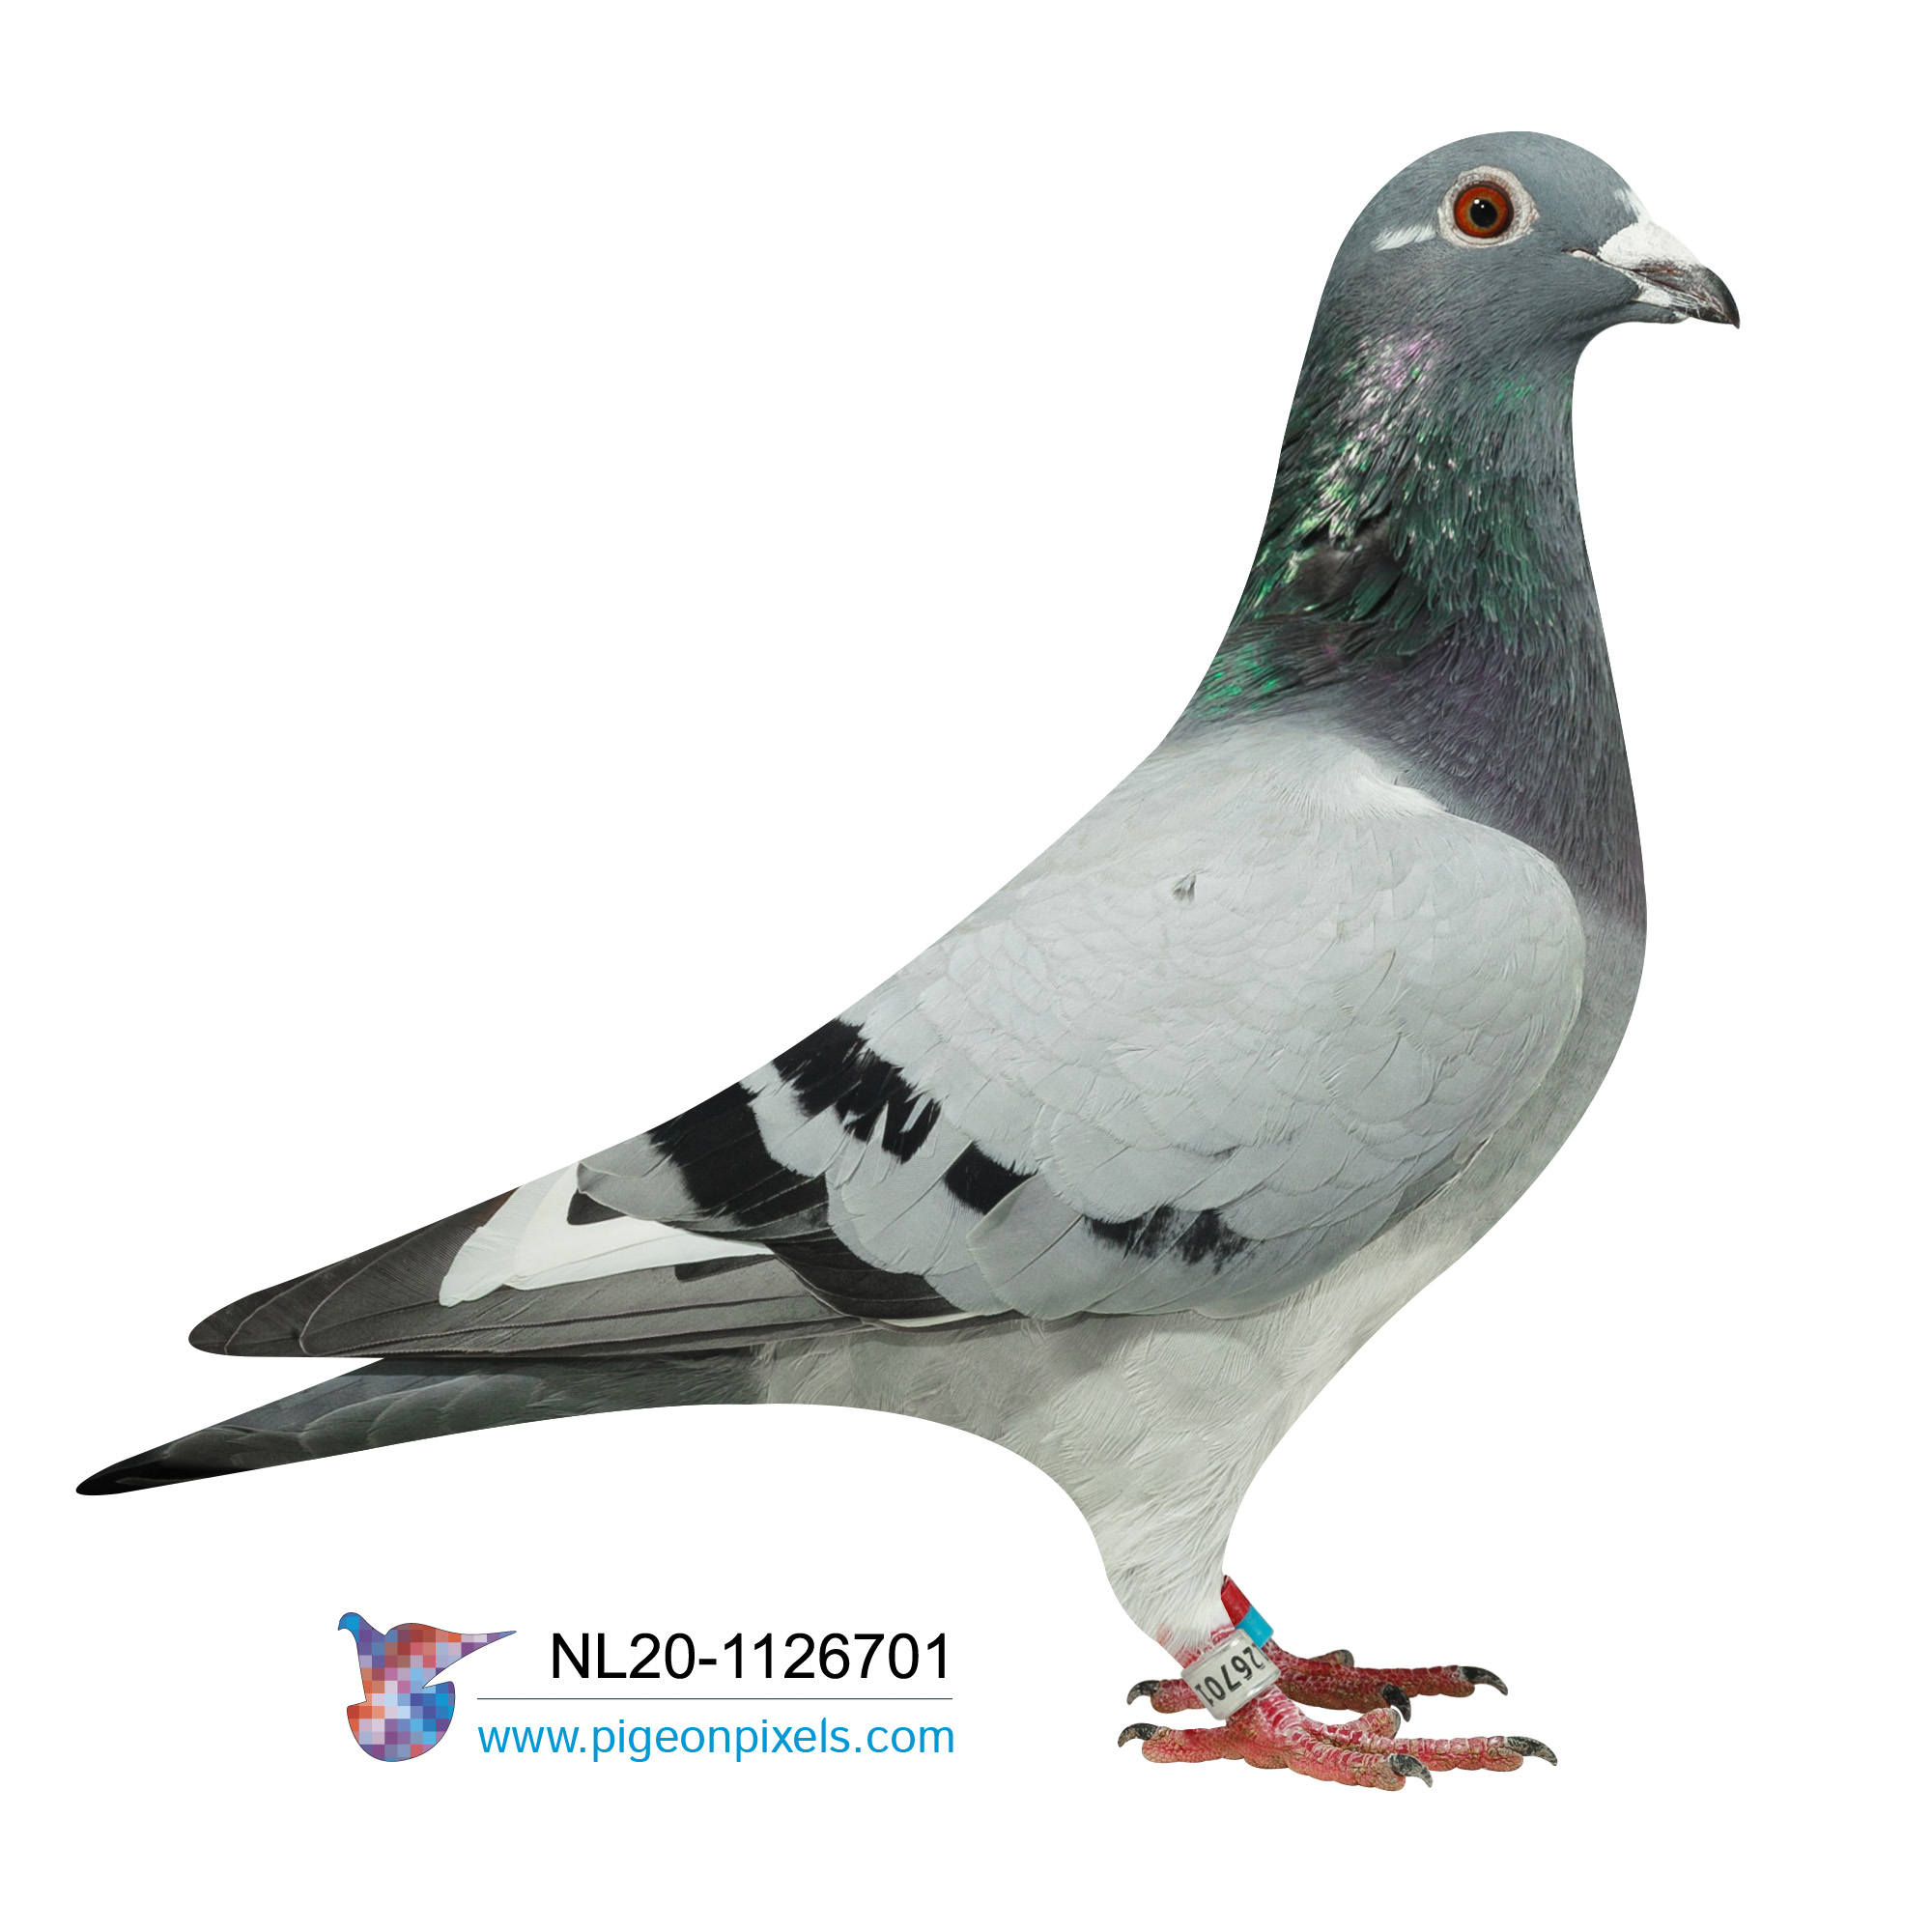 NL2020-1126701 (DE 701) BLUE WHITEFL. HEN